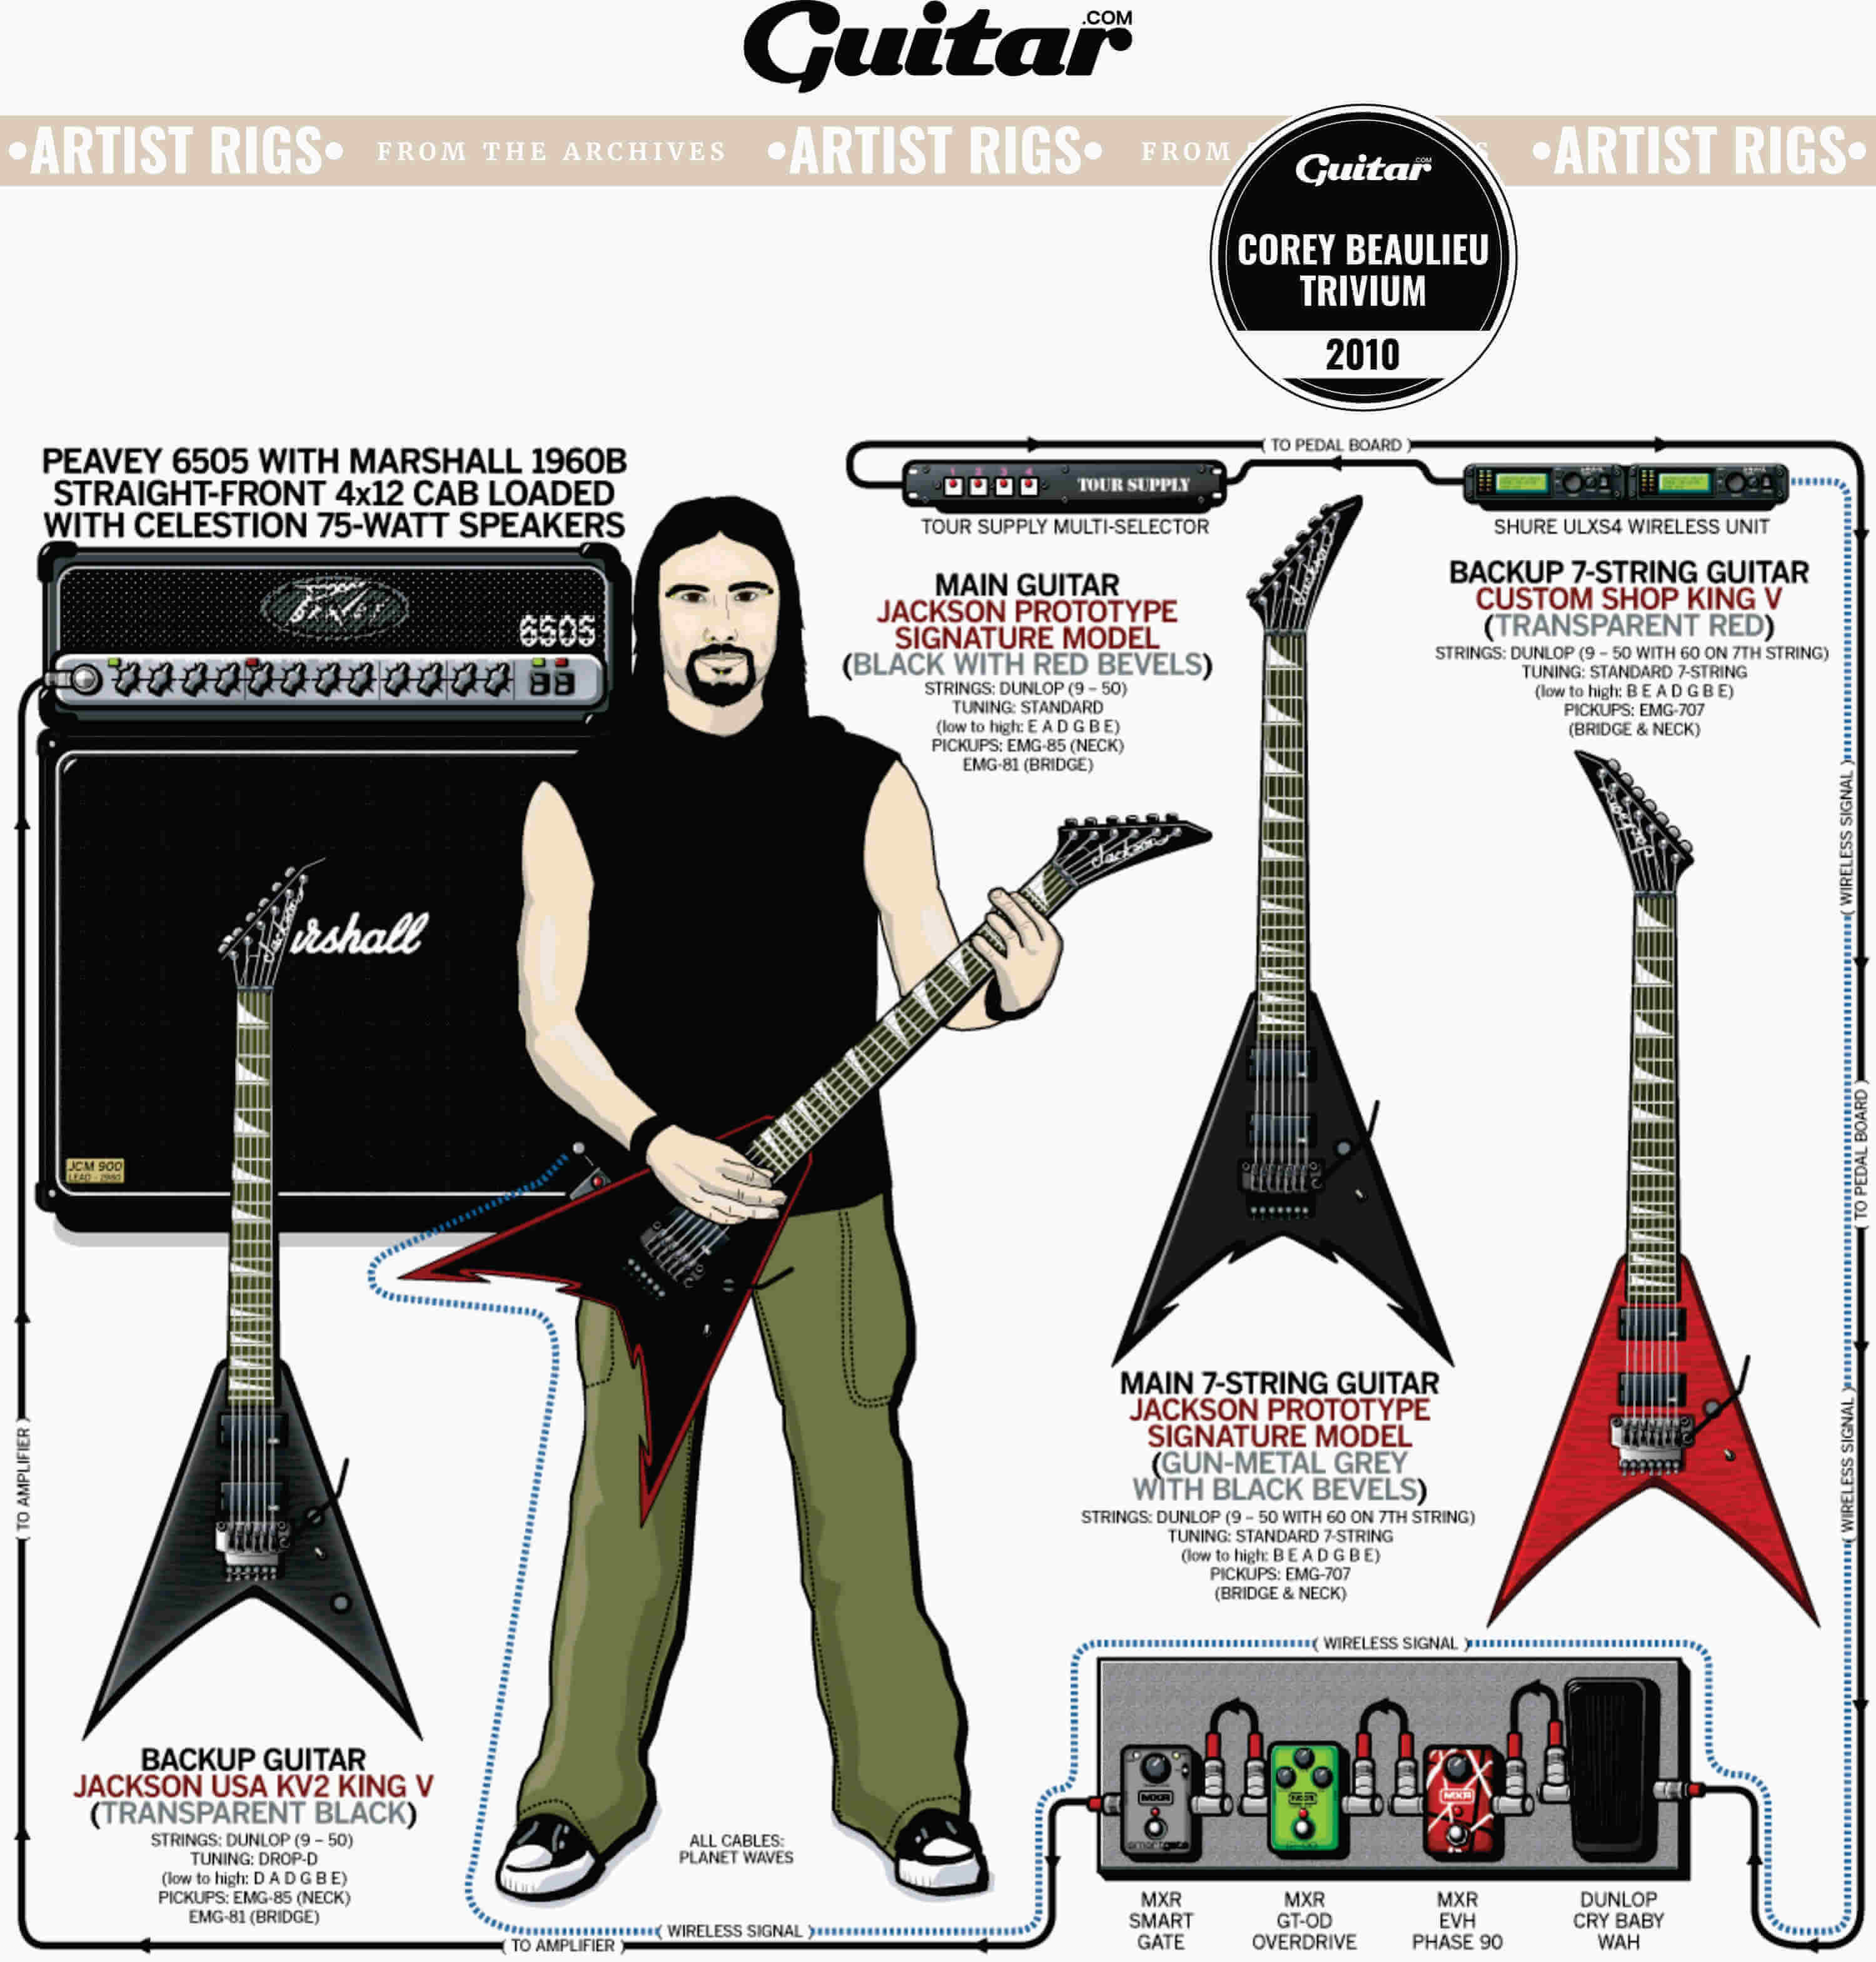 Rig Diagram: Corey Beaulieu, Trivium (2010)